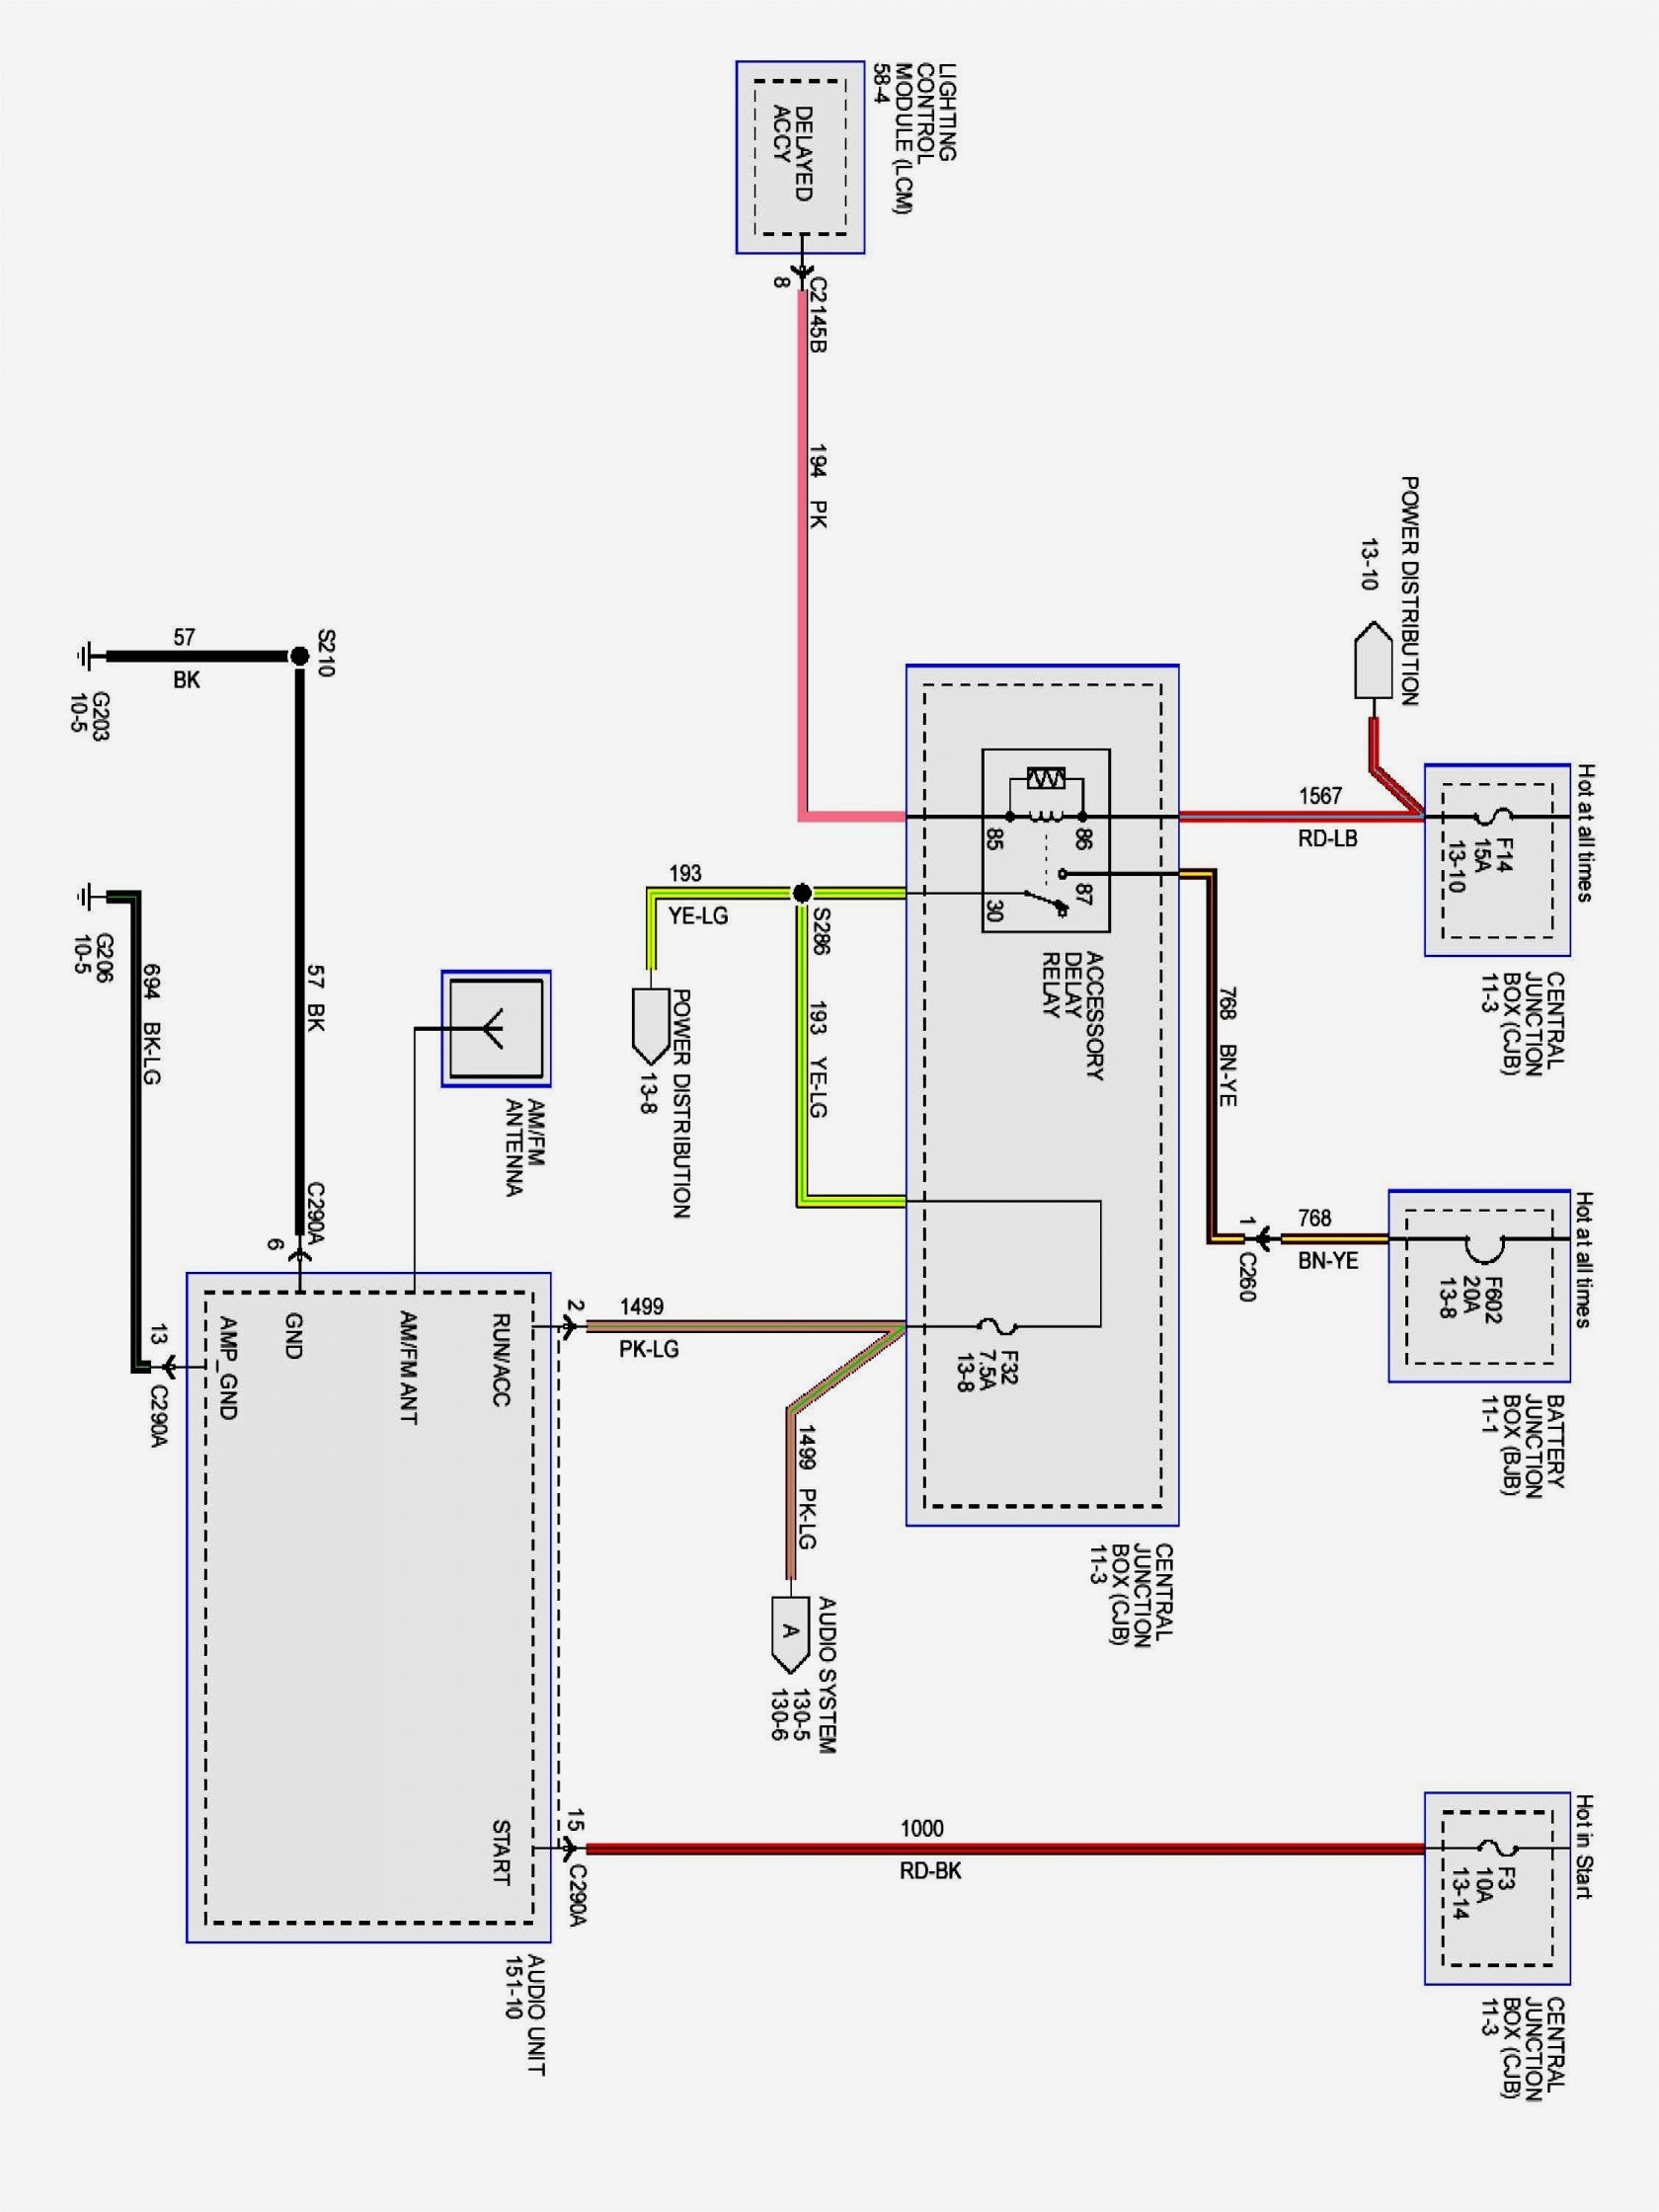 Wiring Diagram For Nest Learning Thermostat Inspirationa Goodman - Goodman Furnace Thermostat Wiring Diagram Nest